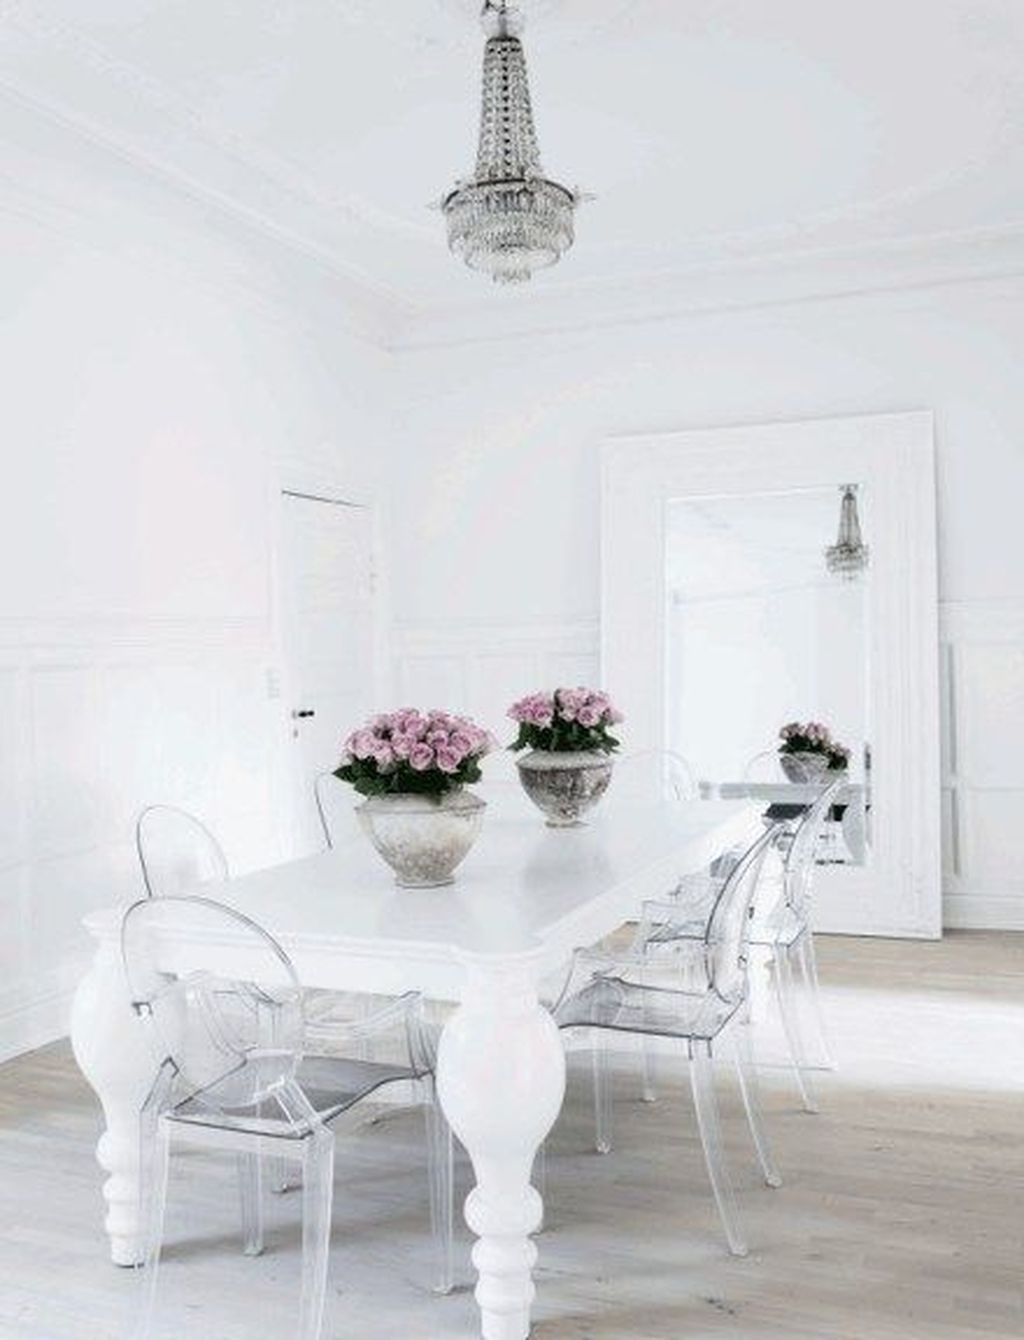 Stunning Romantic Dining Room Decor Ideas Best For Valentines Day 11